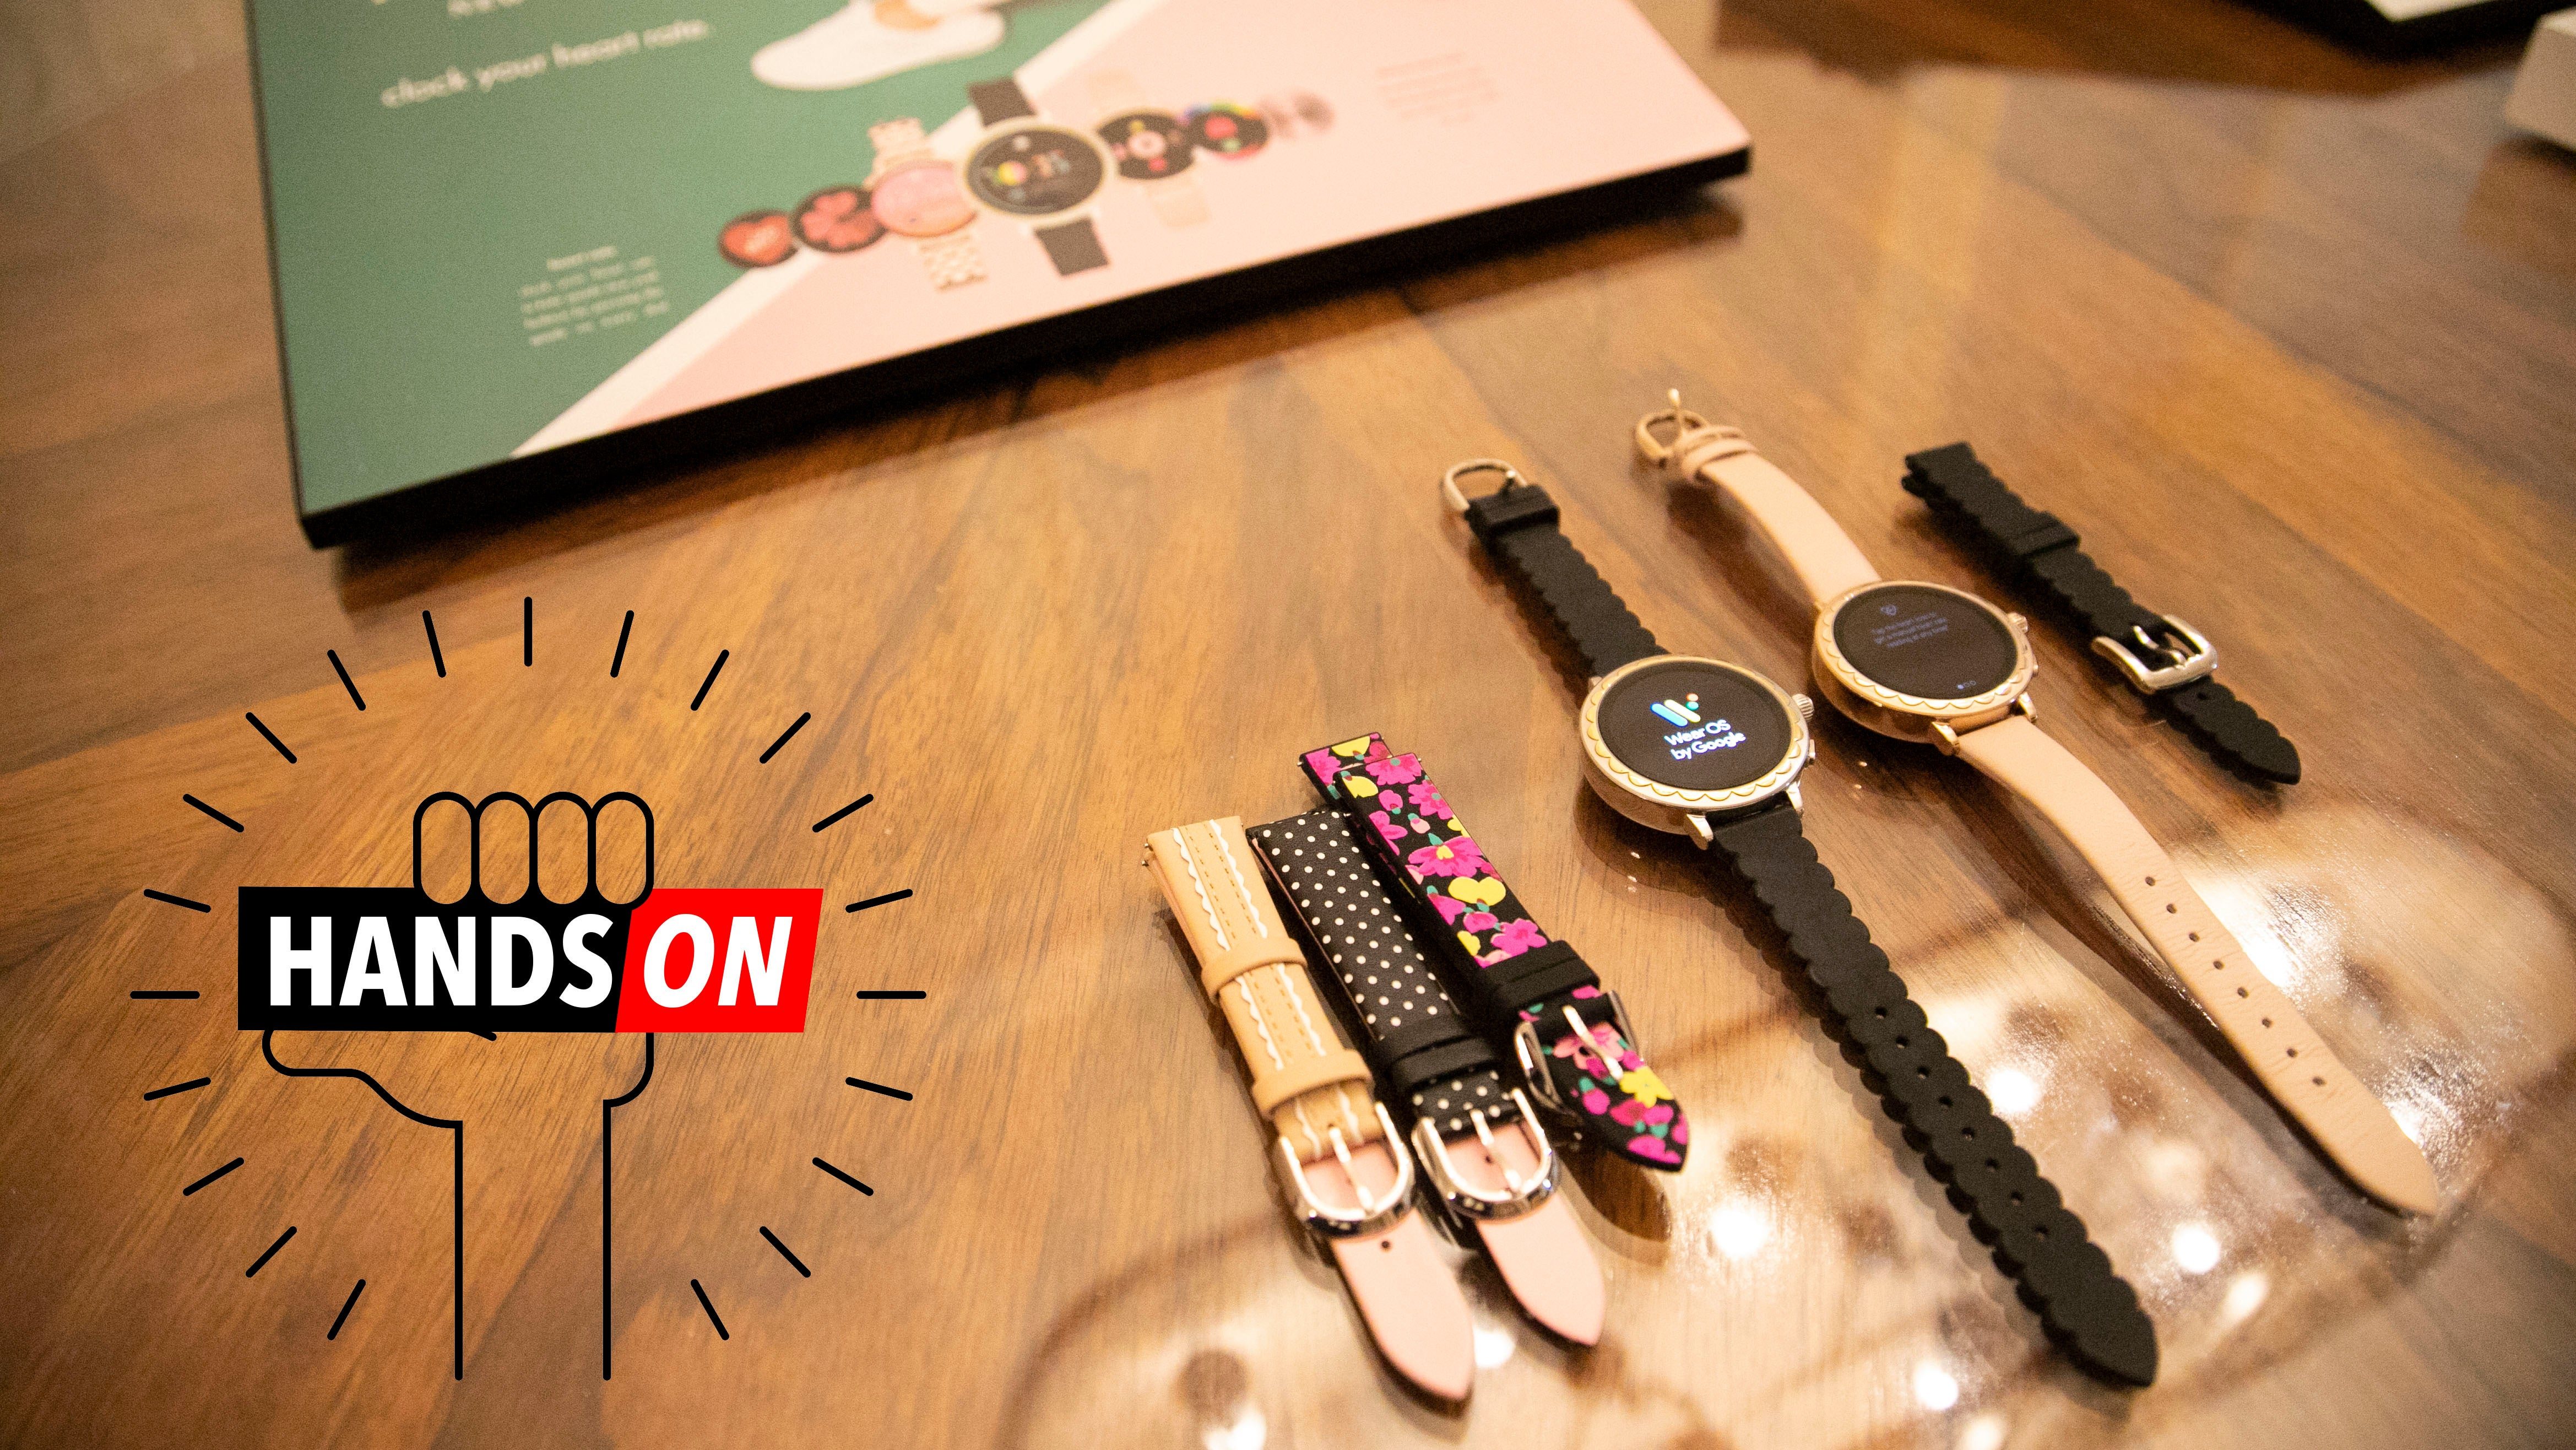 Fossil's Kate Spade Smartwatch Finally Isn't Just Dumb Wrist Candy